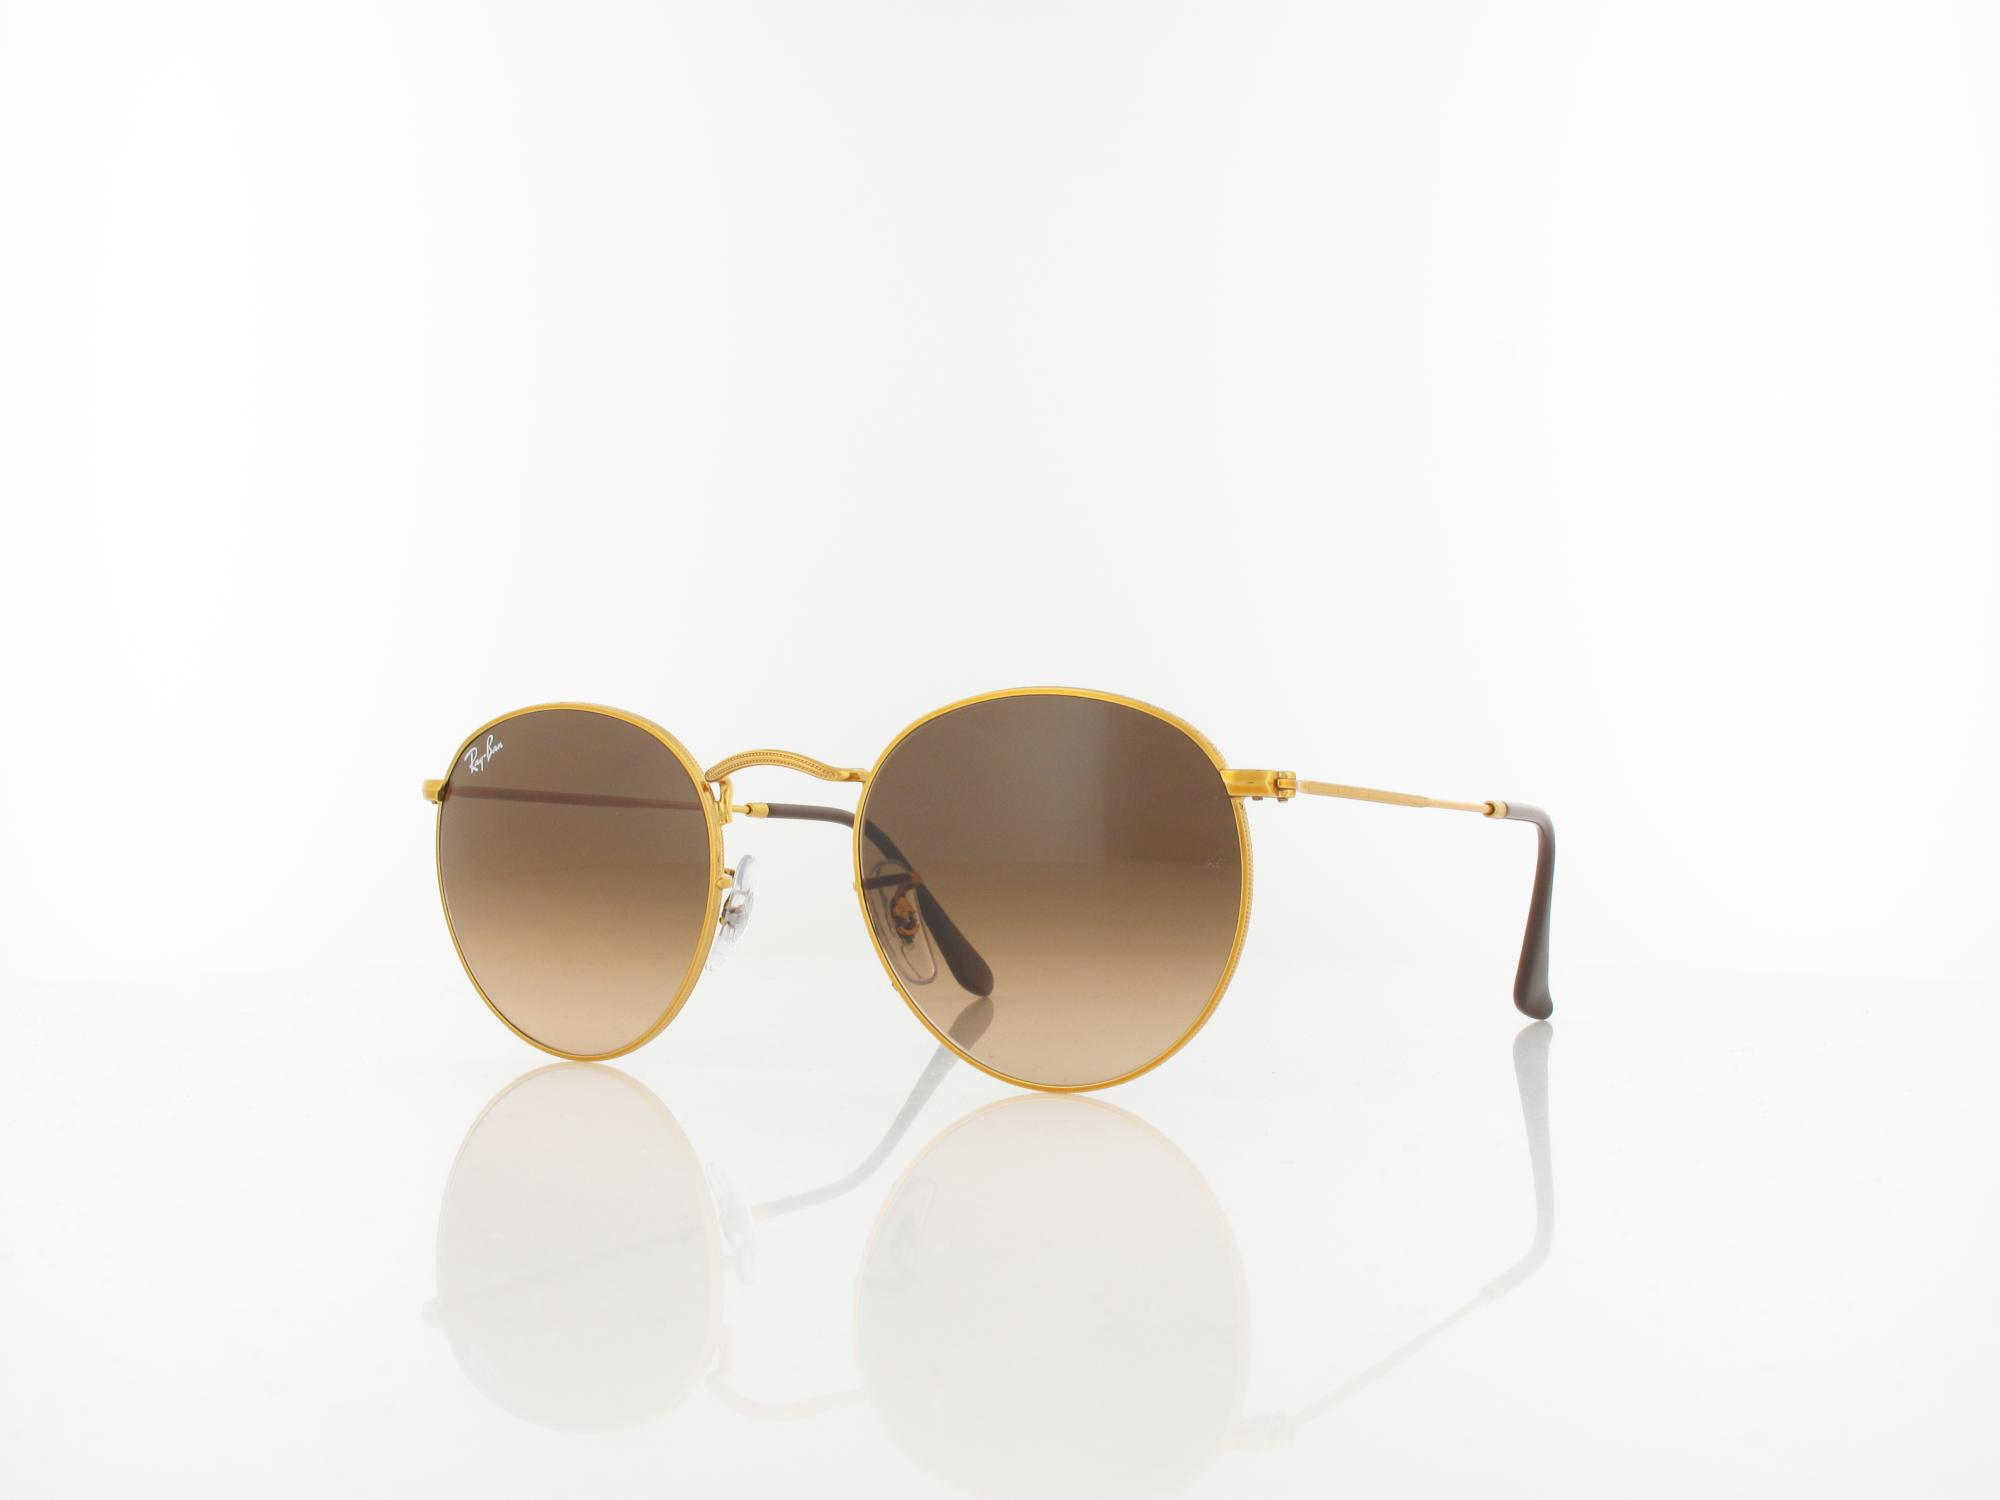 Ray Ban | RB3447 9001A5 50 | shiny light bronze / pink gradient brown